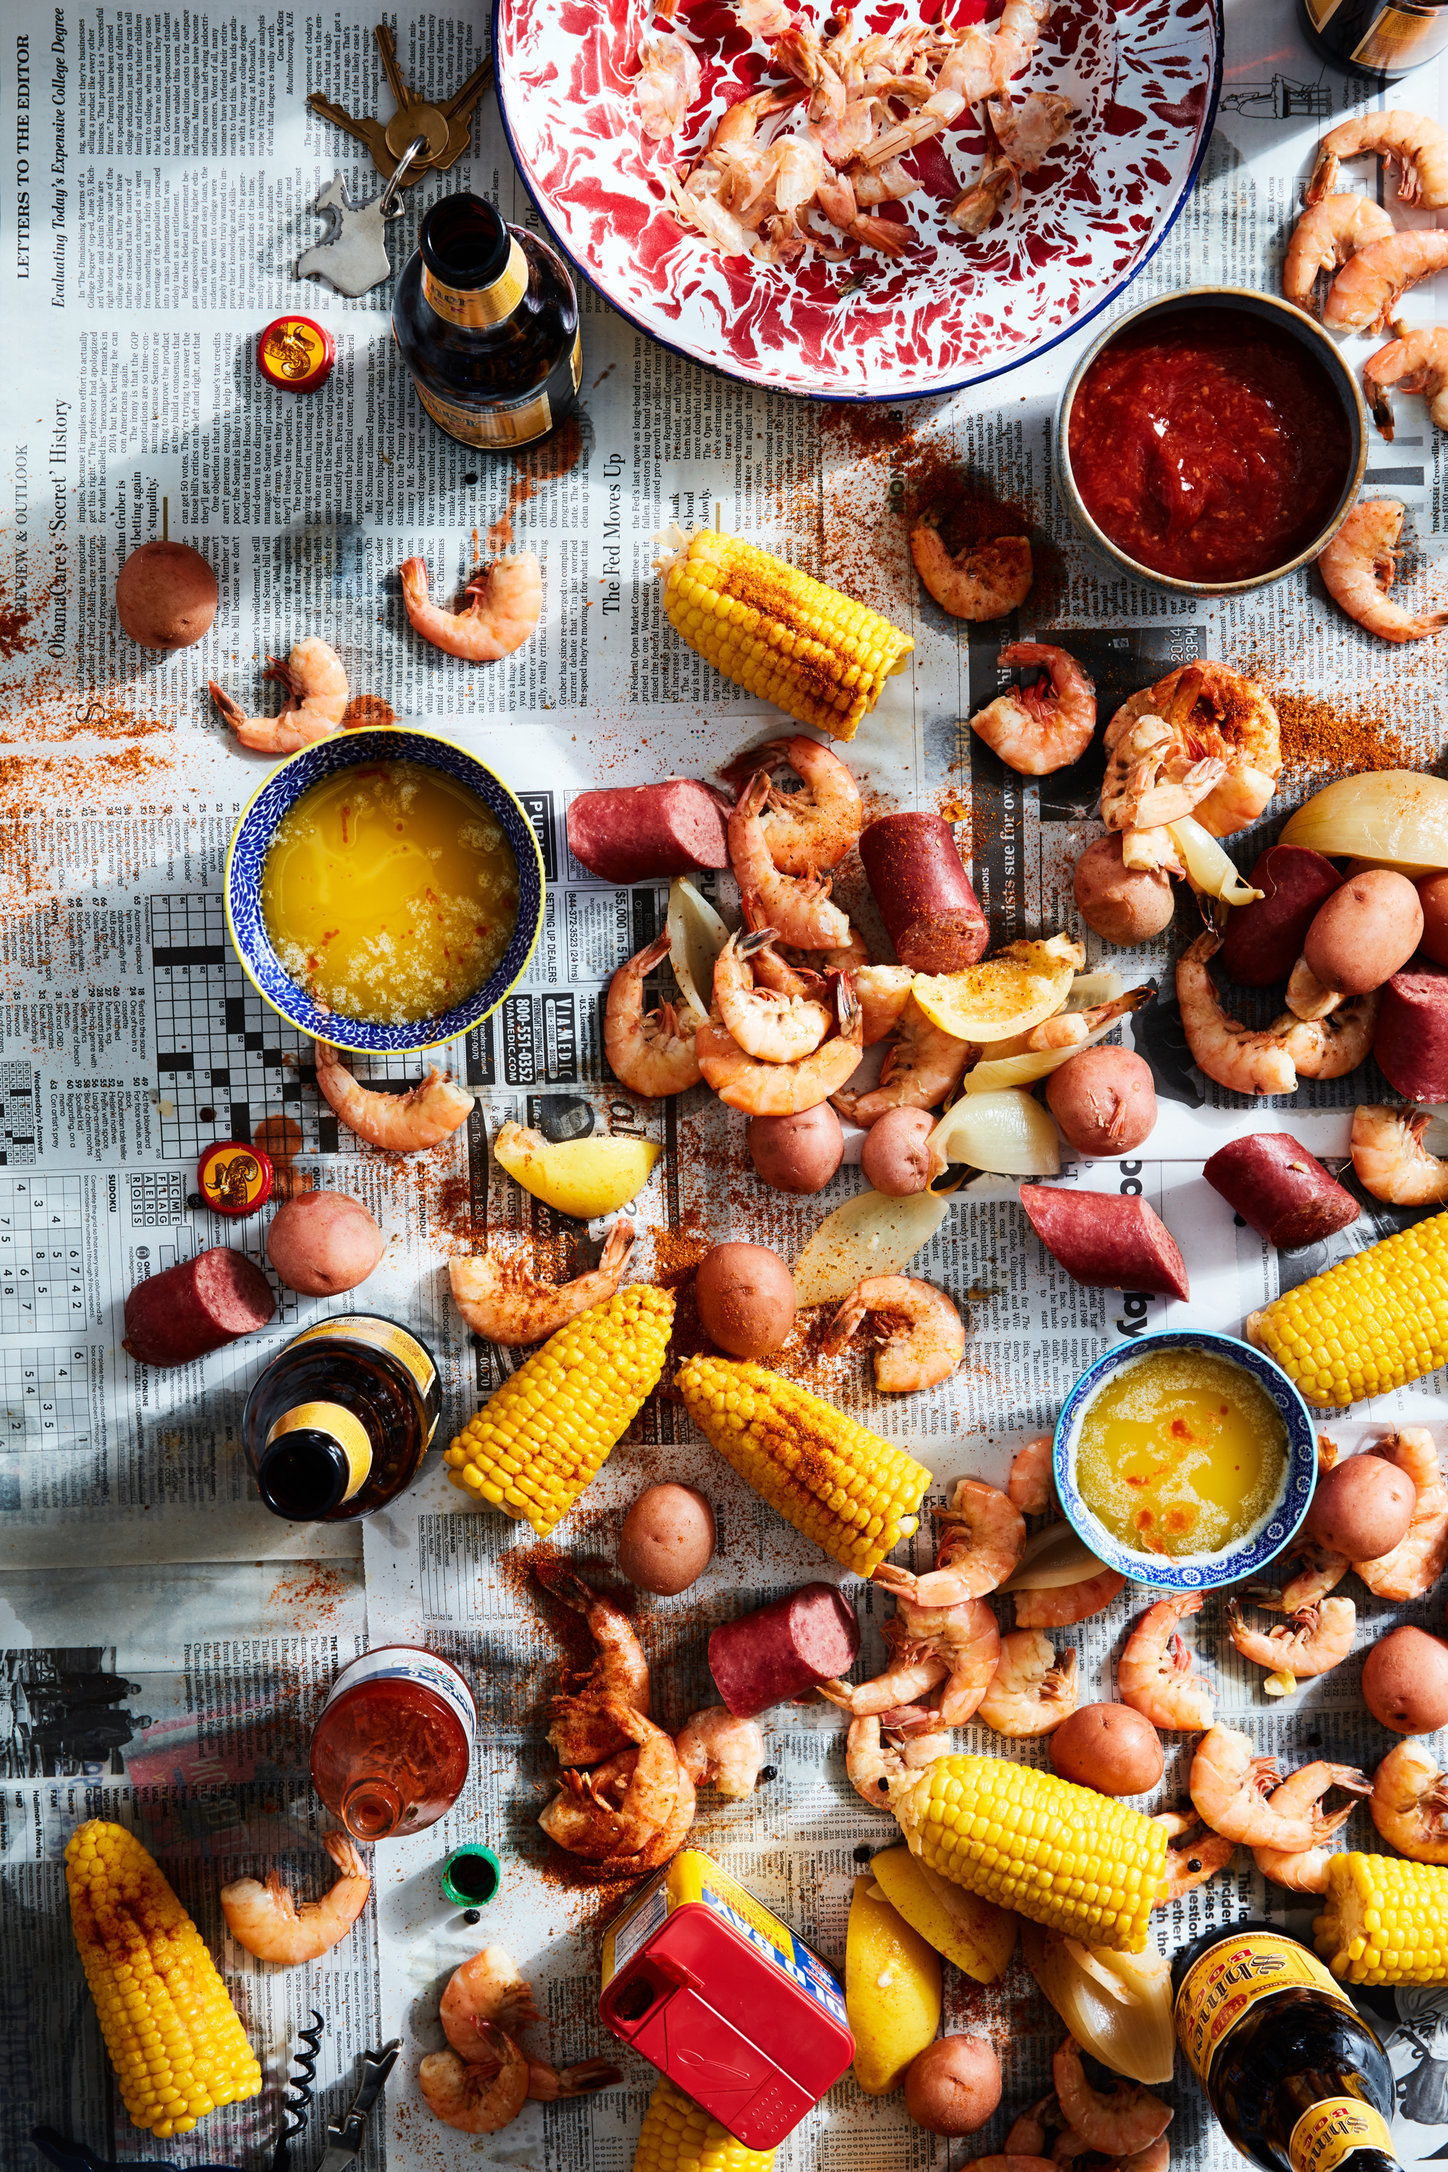 Low-Country-Shrimp-Boil-15062017.jpg